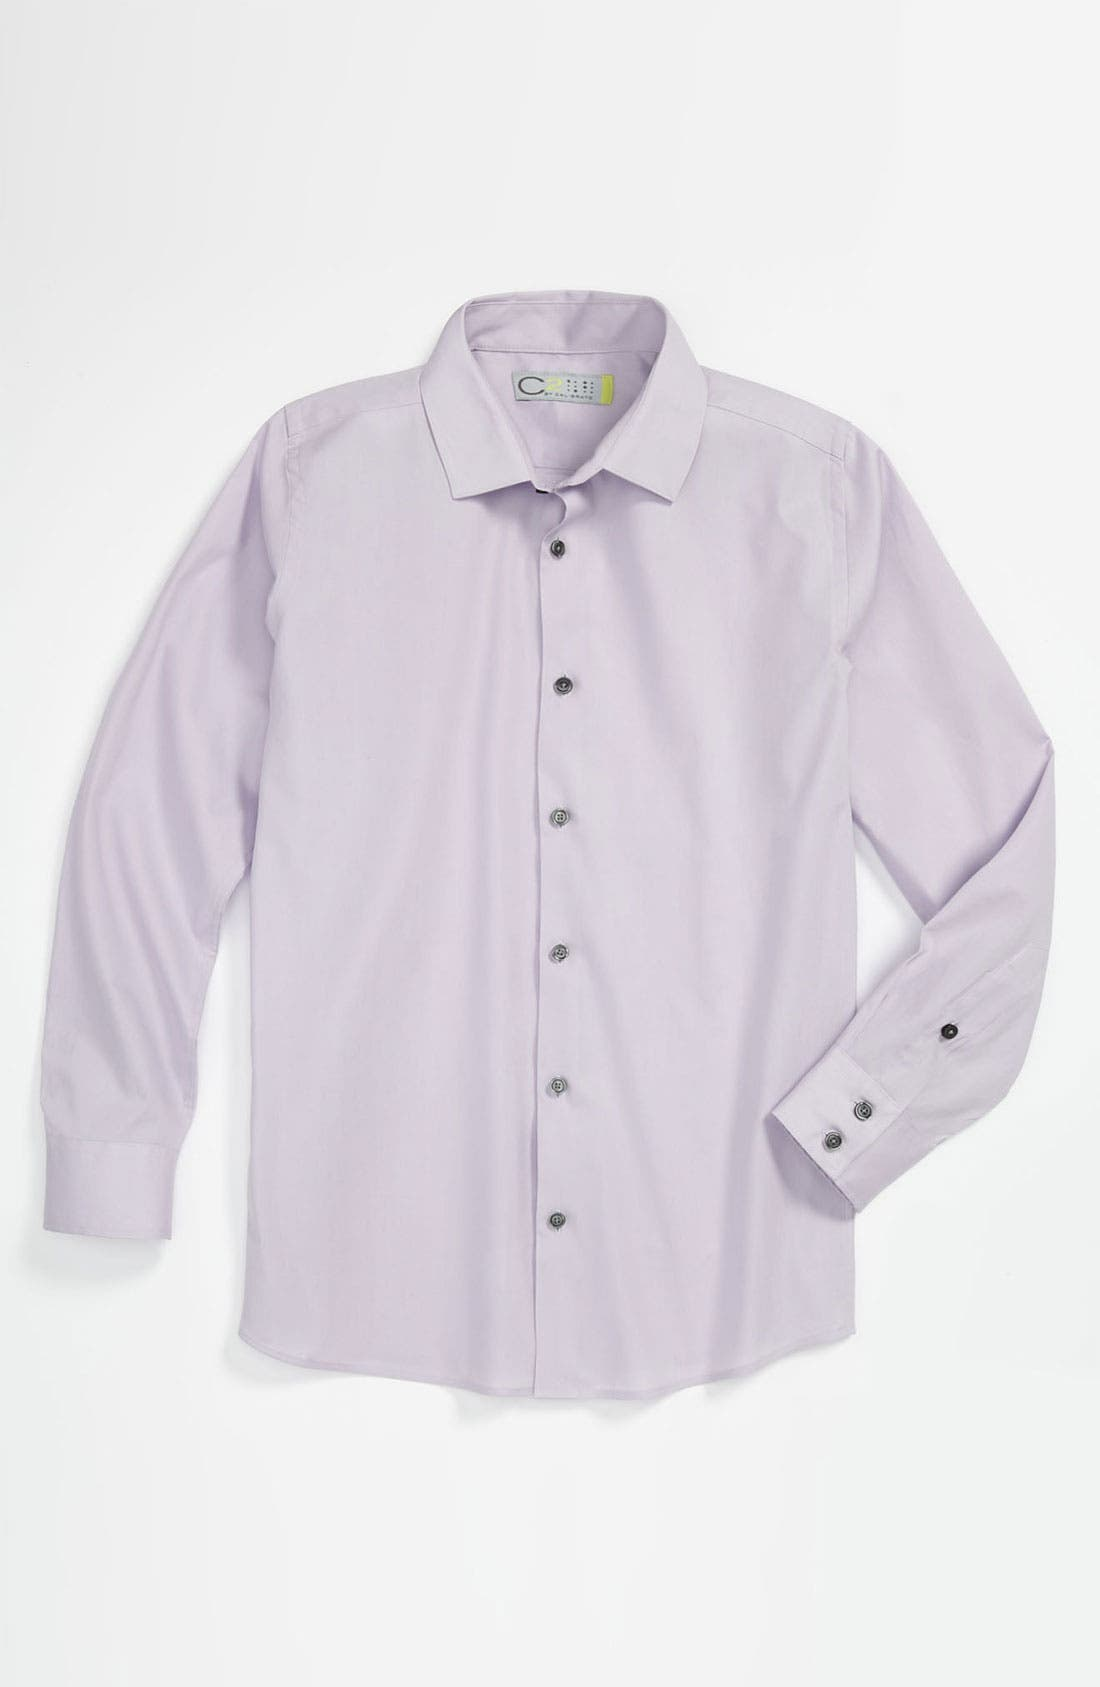 Main Image - C2 by Calibrate 'Carter' Dress Shirt (Little Boys)